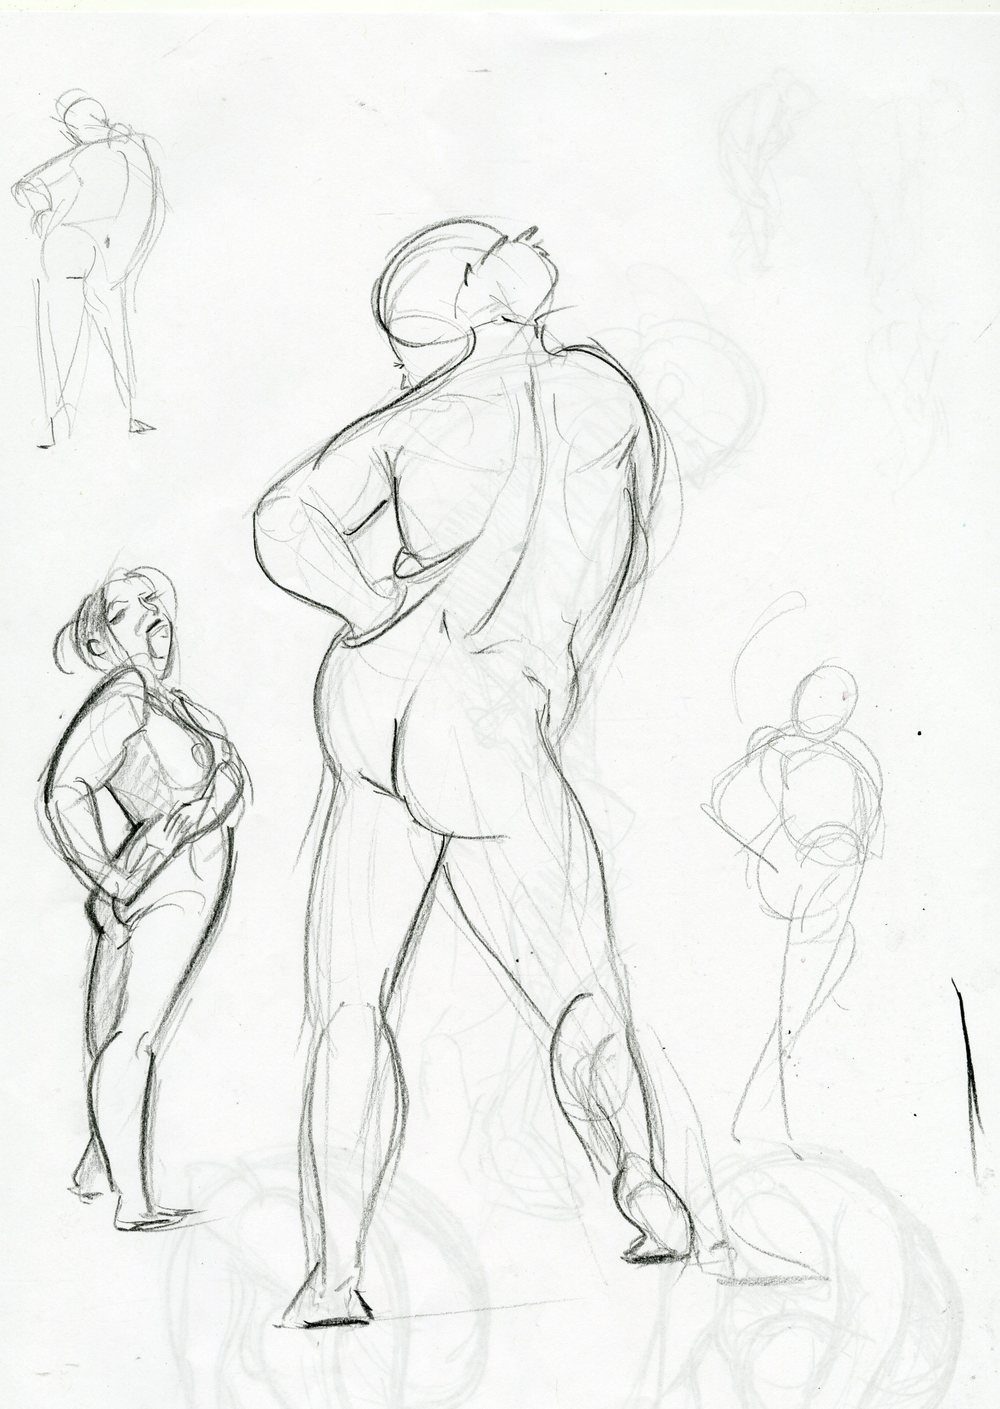 lifeDrawing_014.jpg